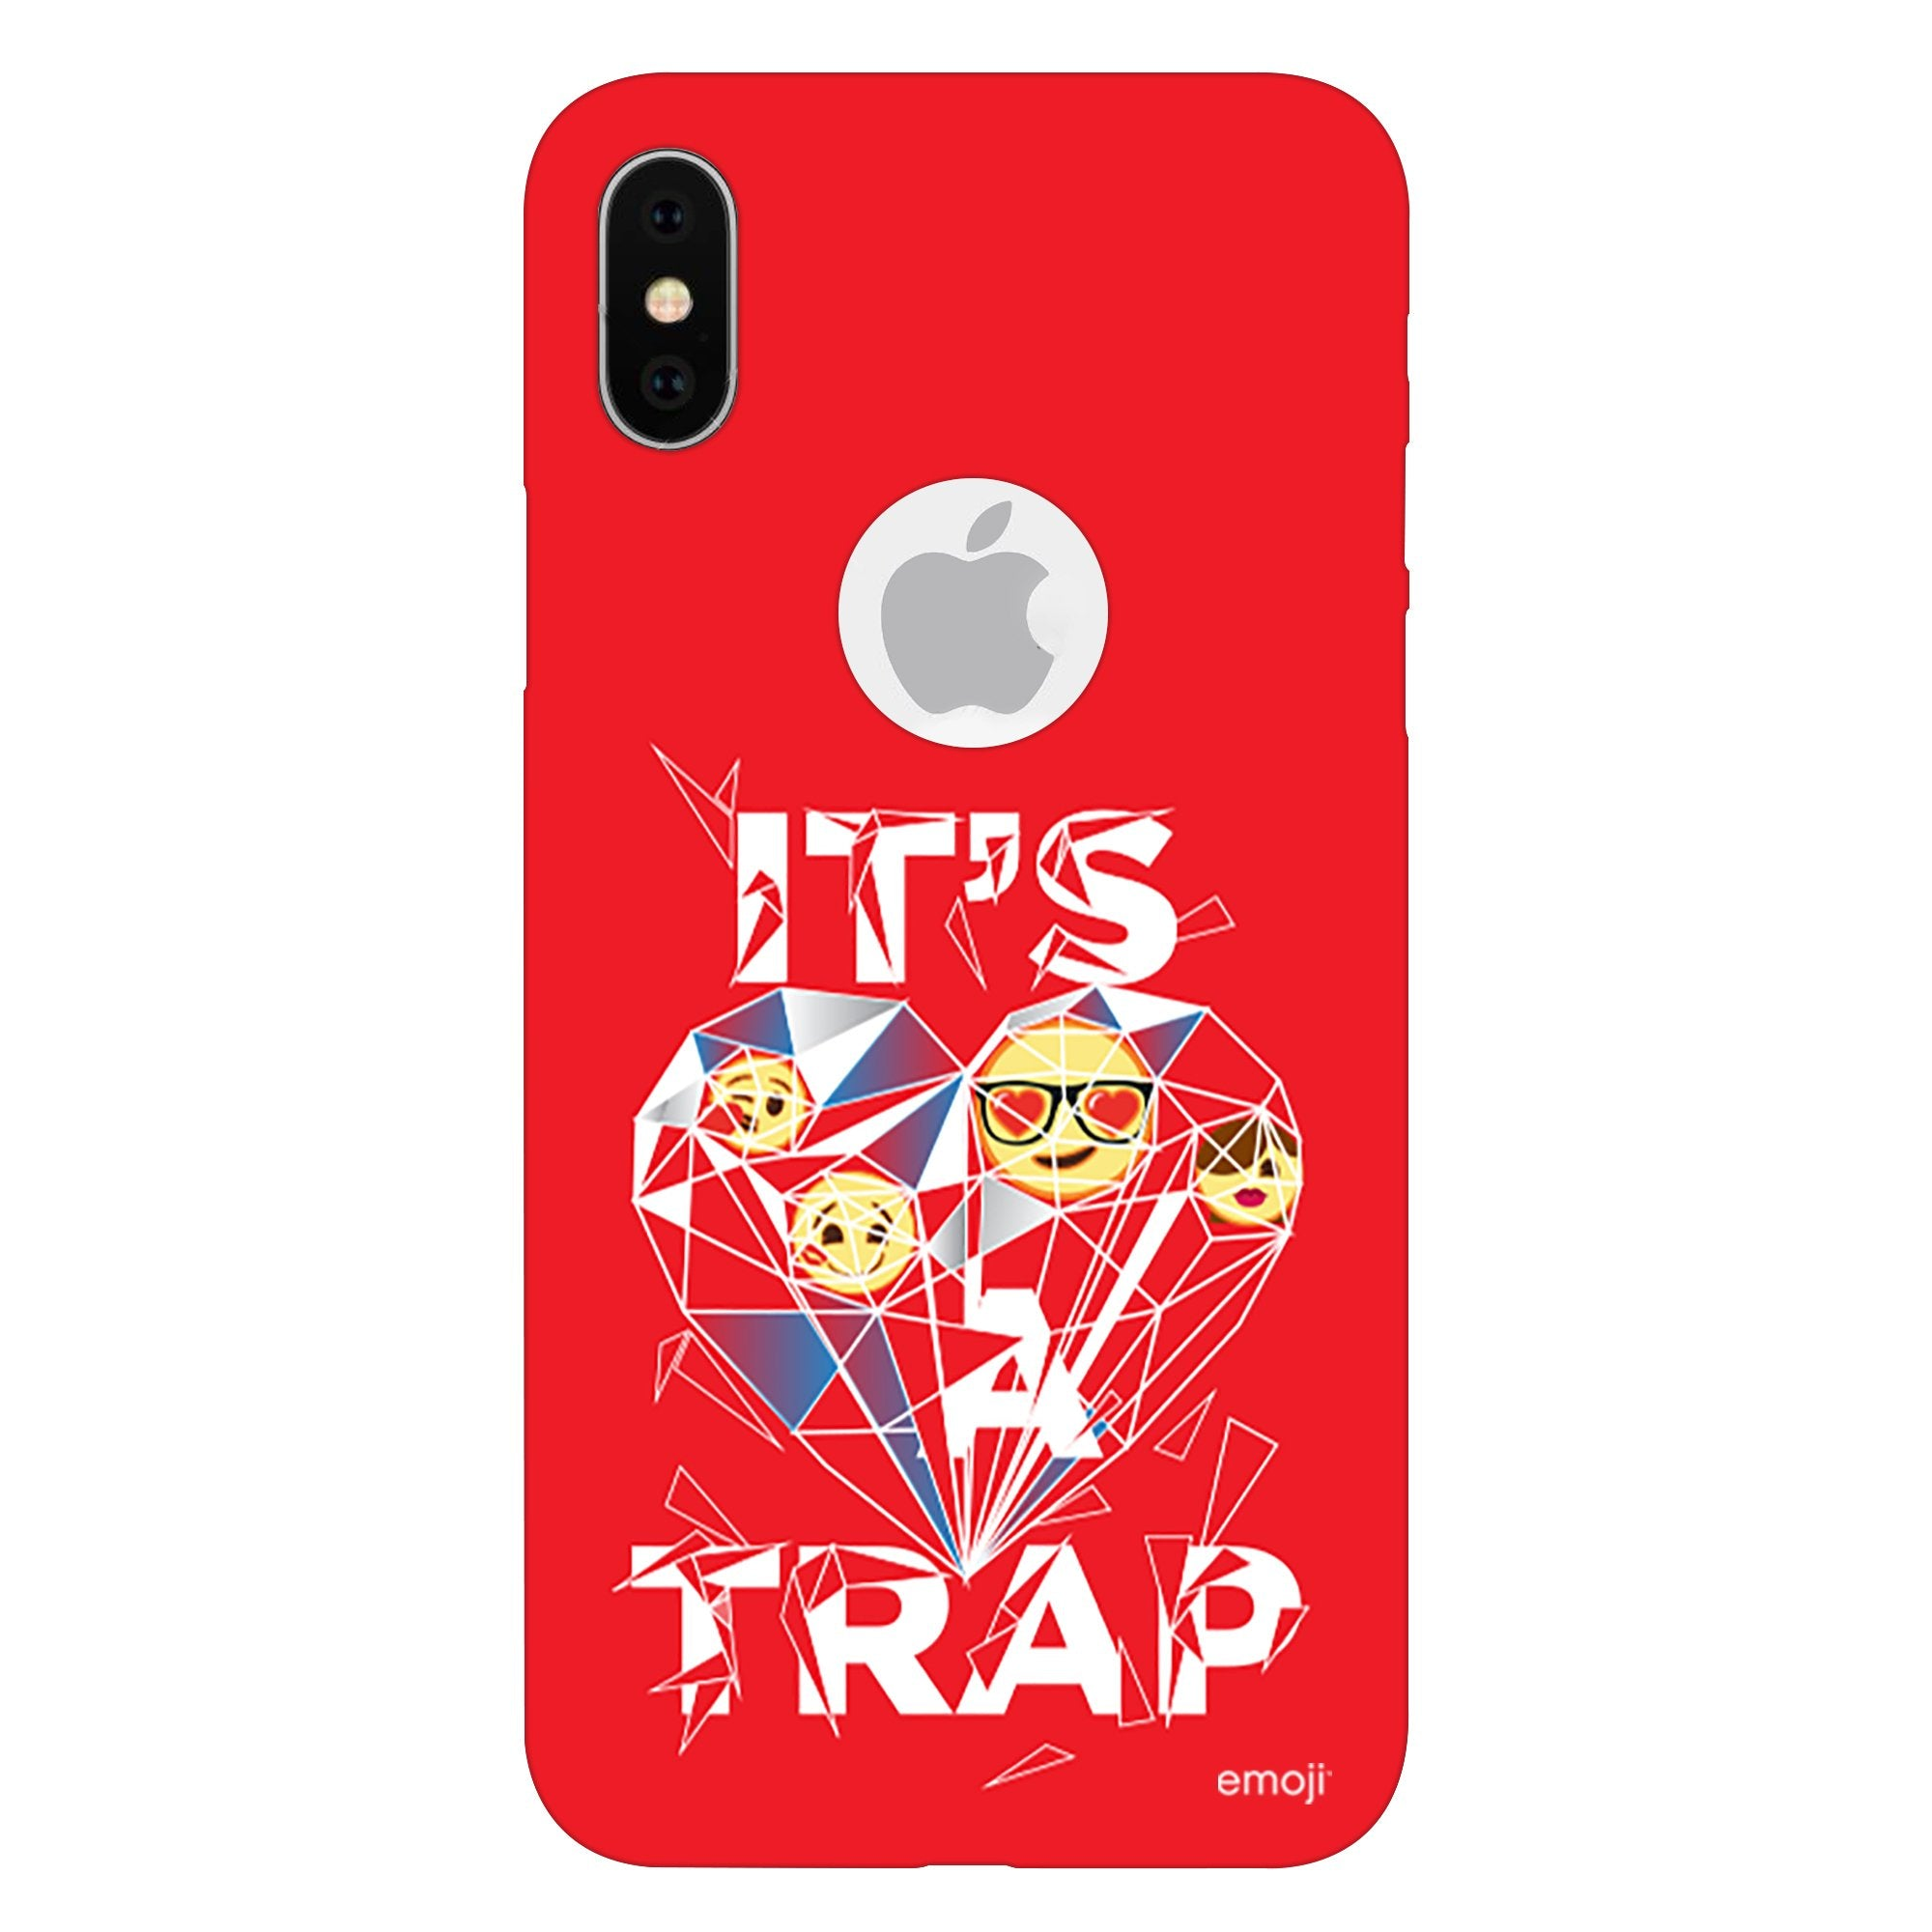 Official Licensed emoji Printed Mobile Case - It's A Trap